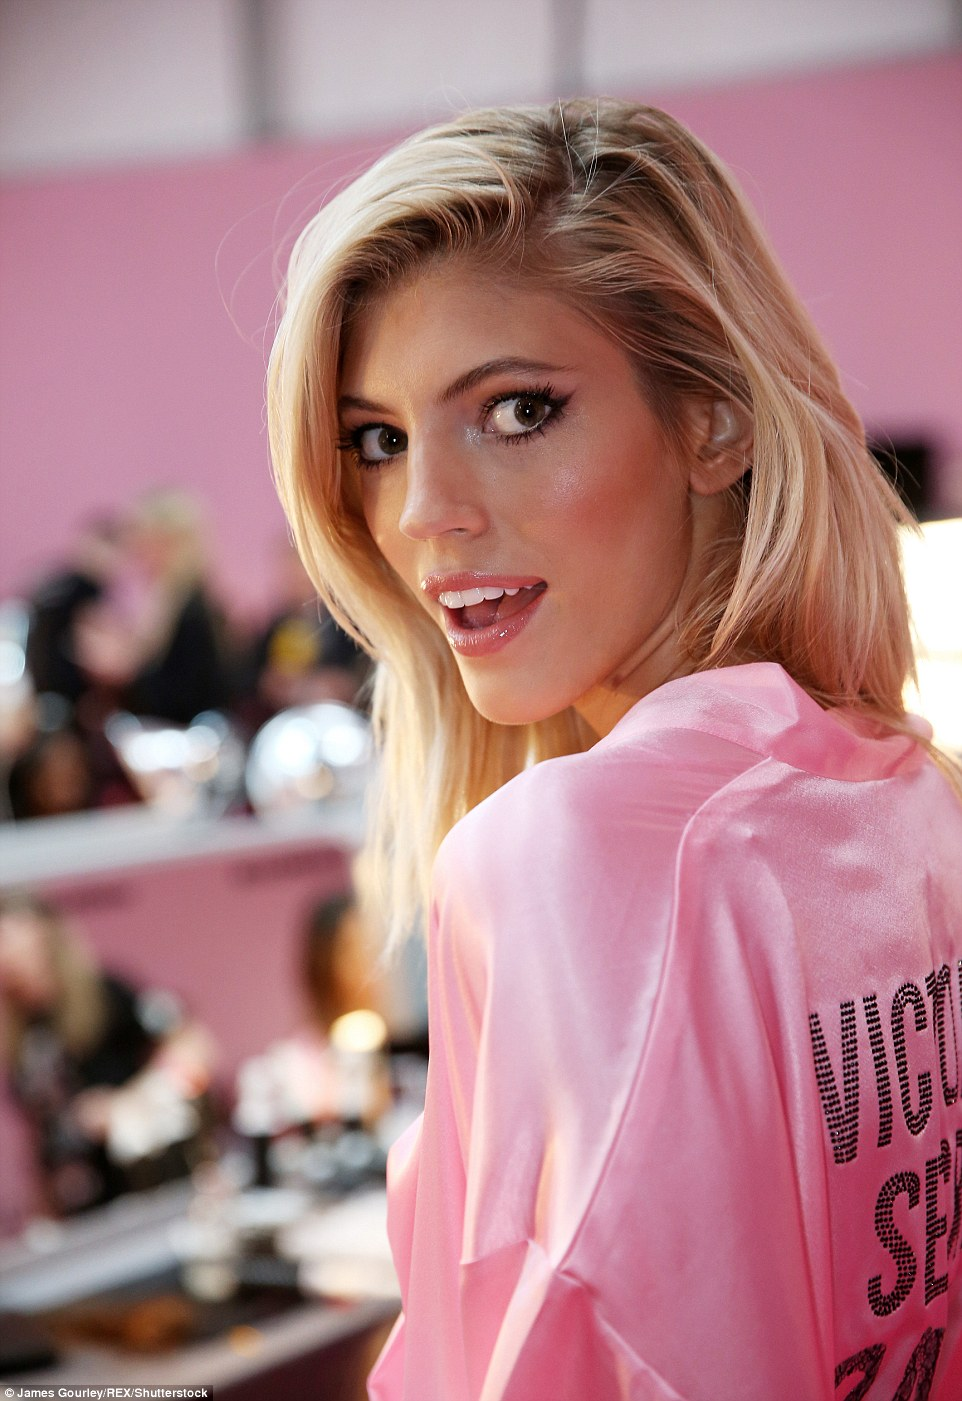 Back with a bang!Having first taken the famed stage in 2013, Pilates fanatic Devon Windsor was back with a vengeance as she dazzled for the camera